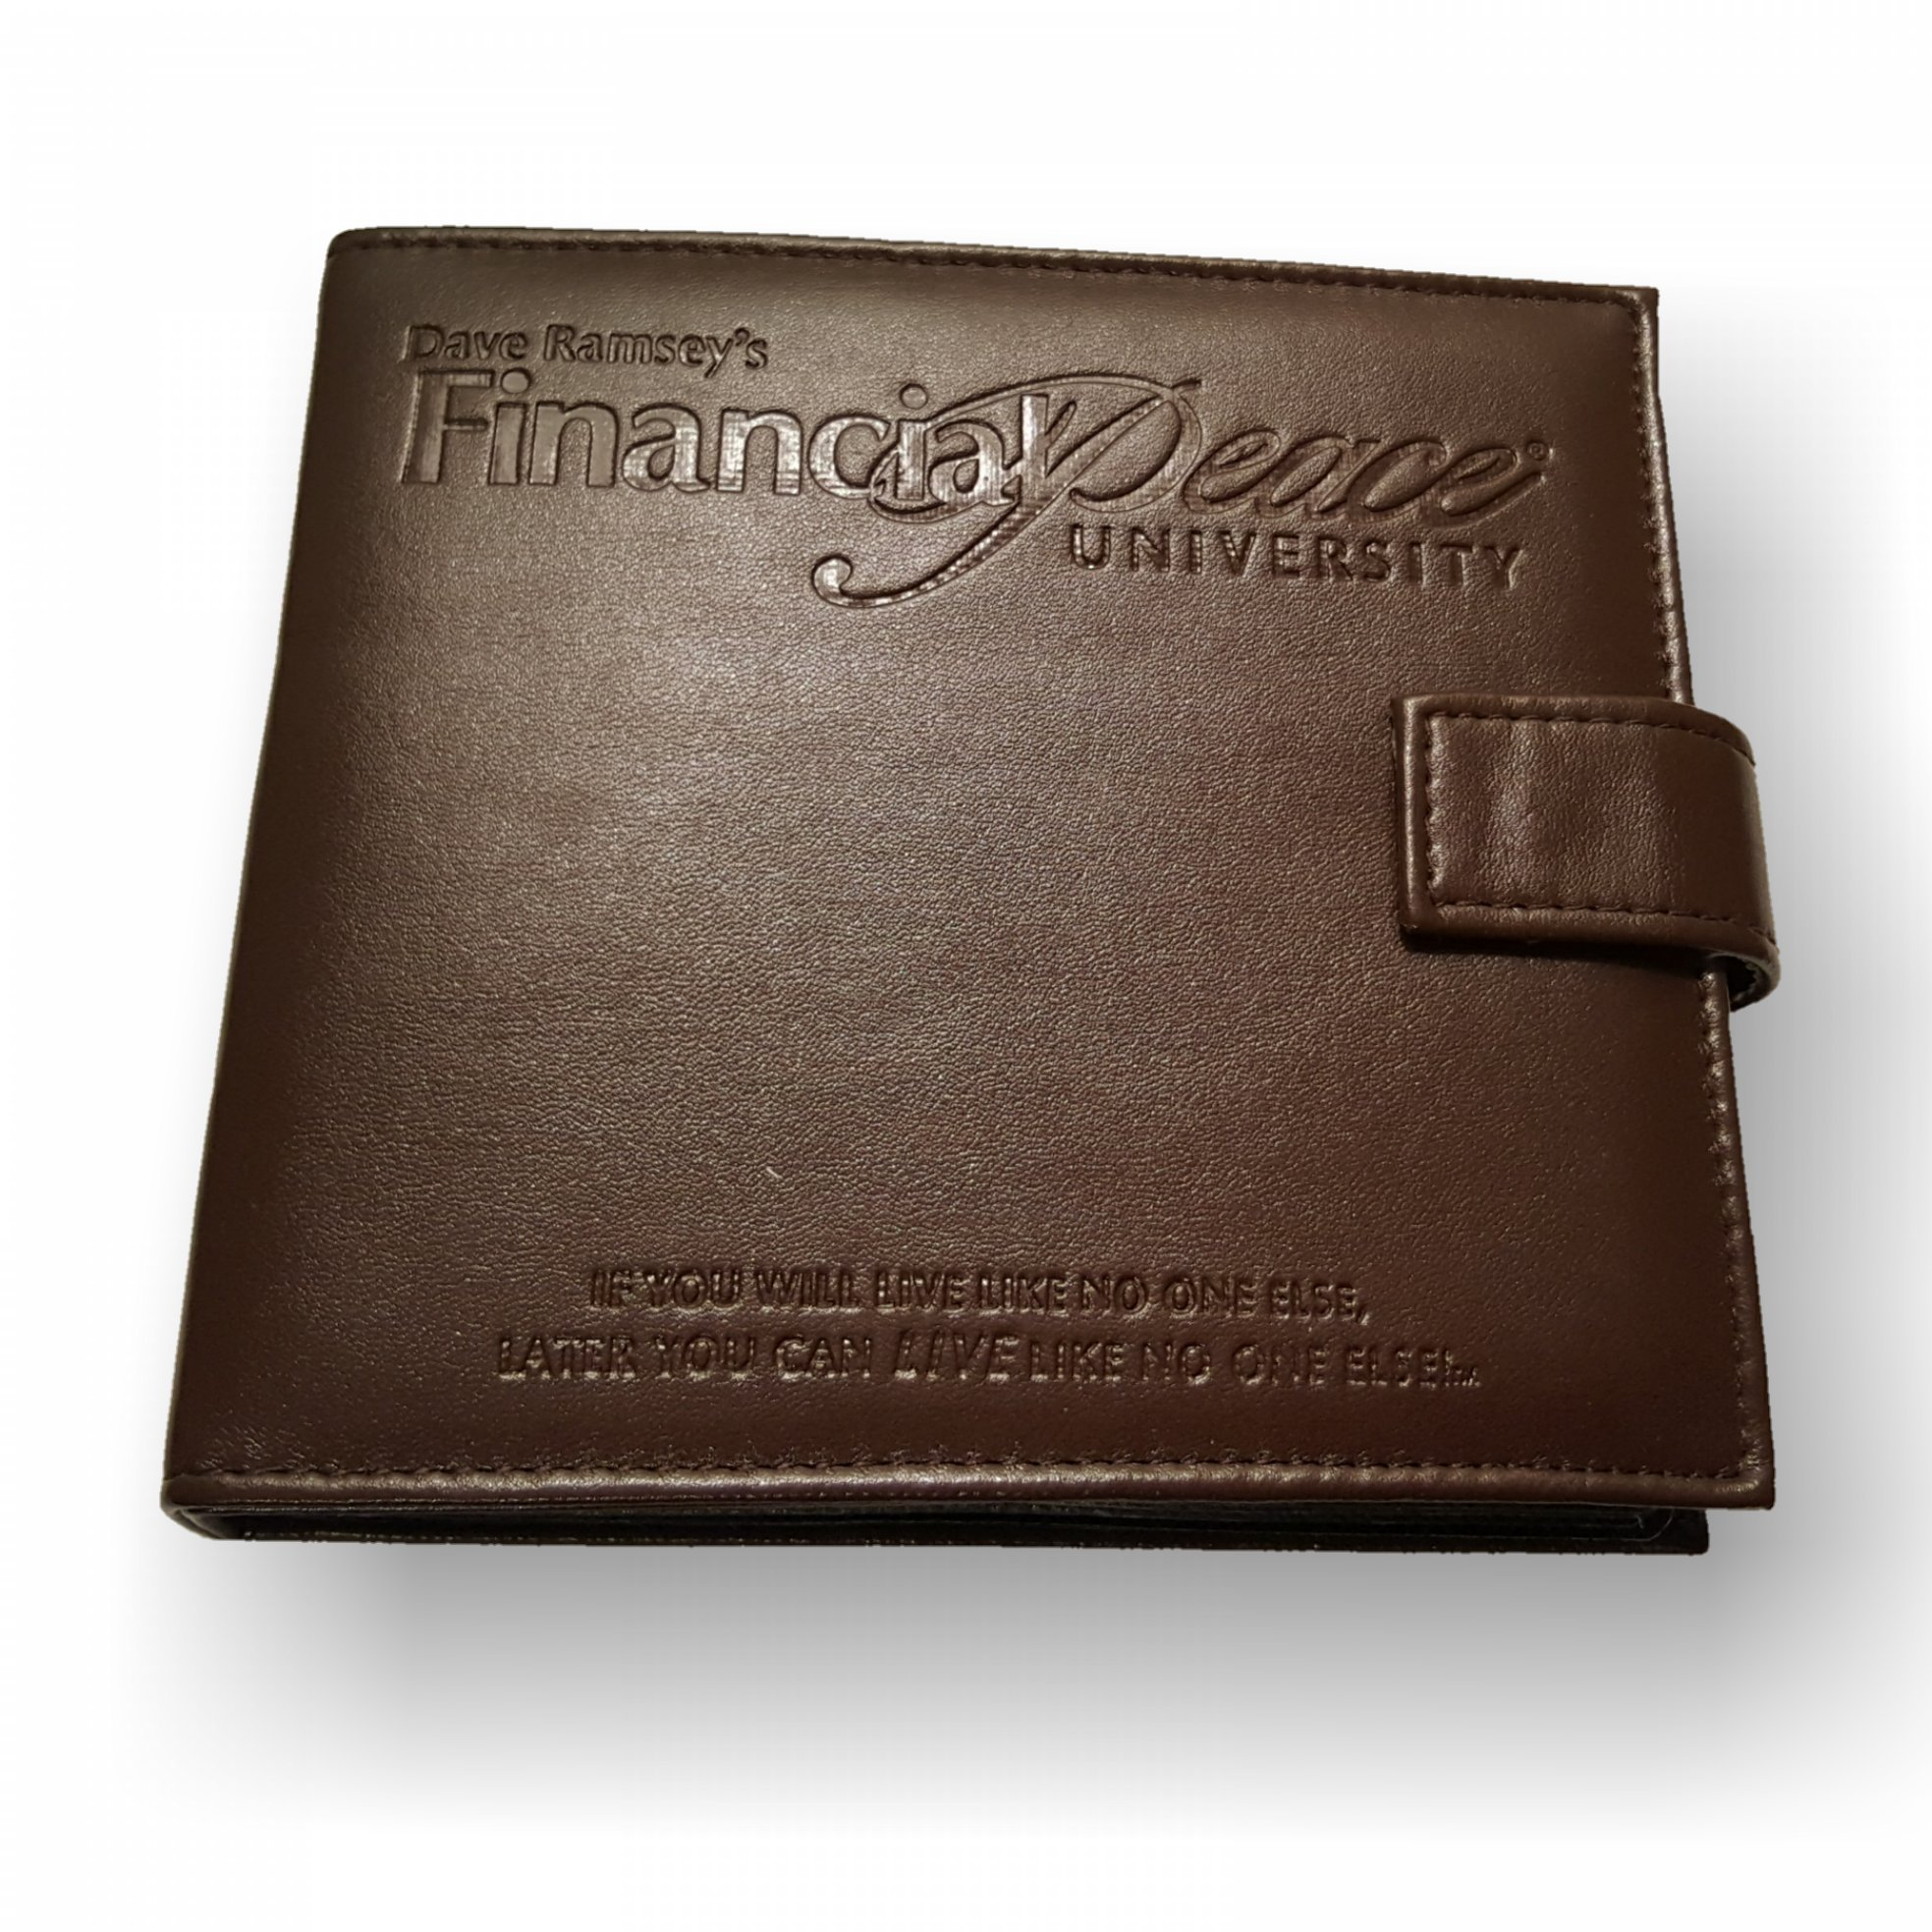 Worksheets Dave Ramsey Financial Peace Worksheets dave ramseys financial peace university 13 cd set w leather case by ramsey 2012 05 03 9781934629062 amaz